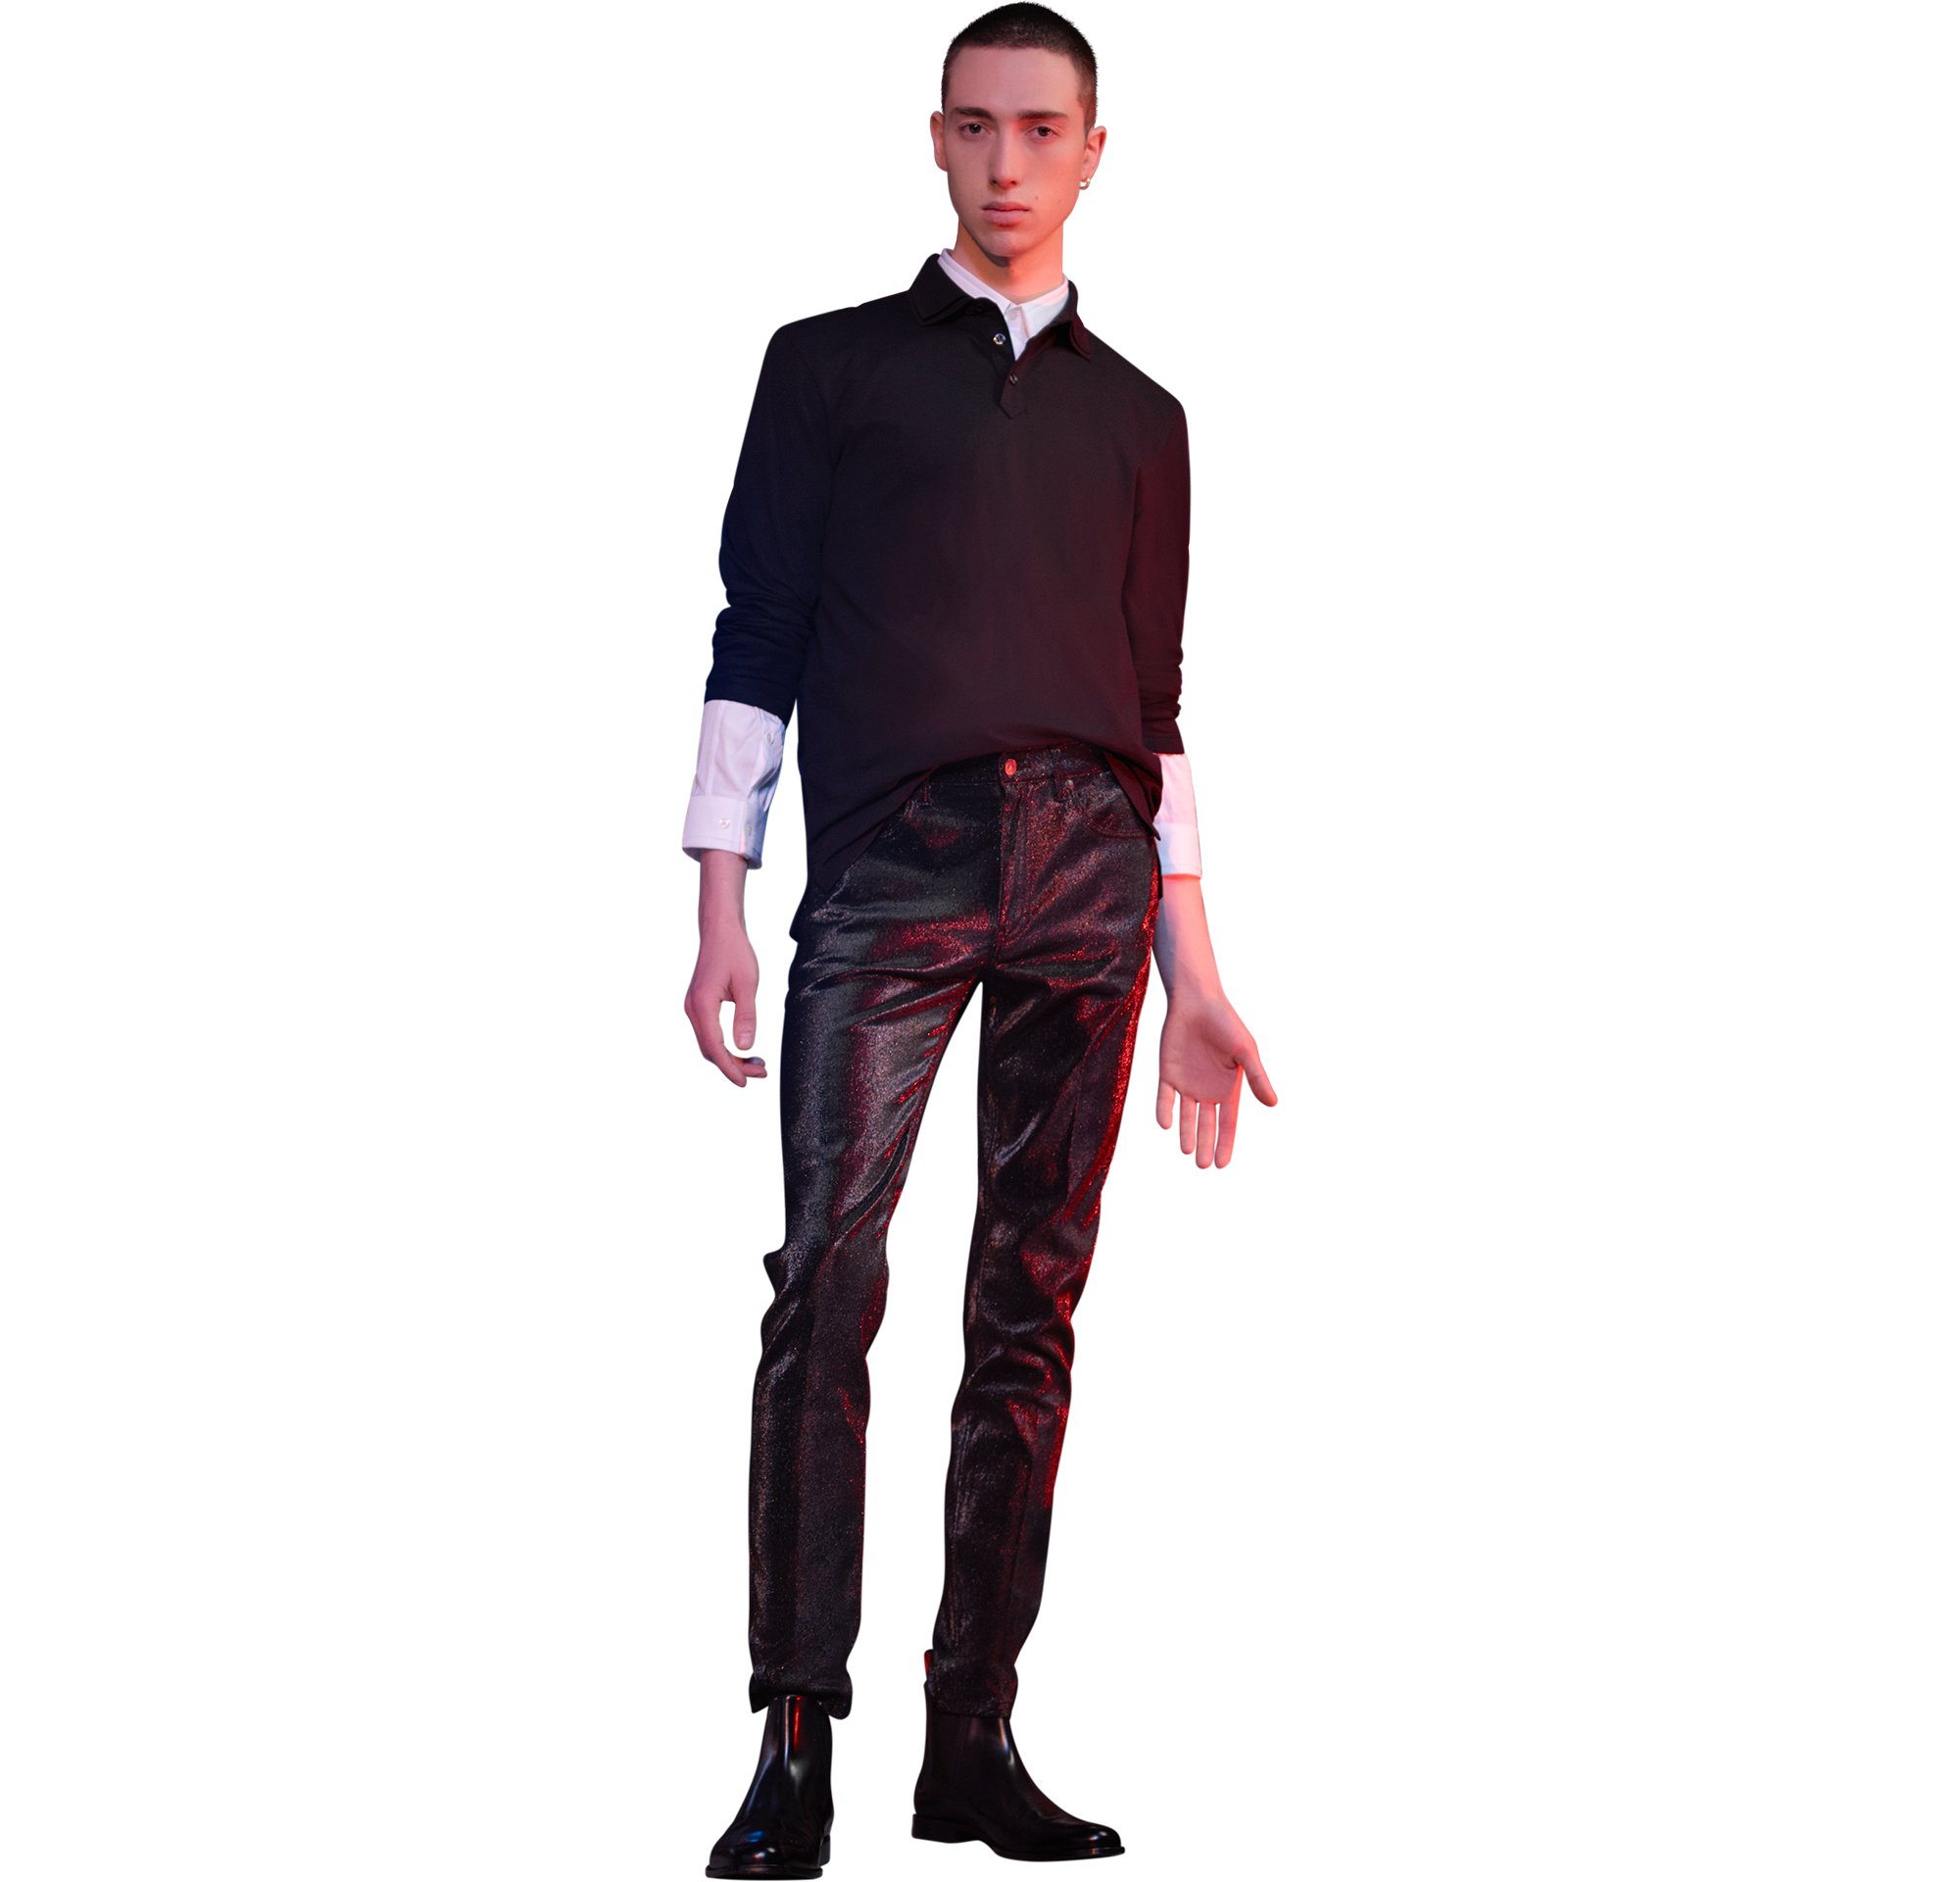 Pullover, shirt, trousers by HUGO Menswear